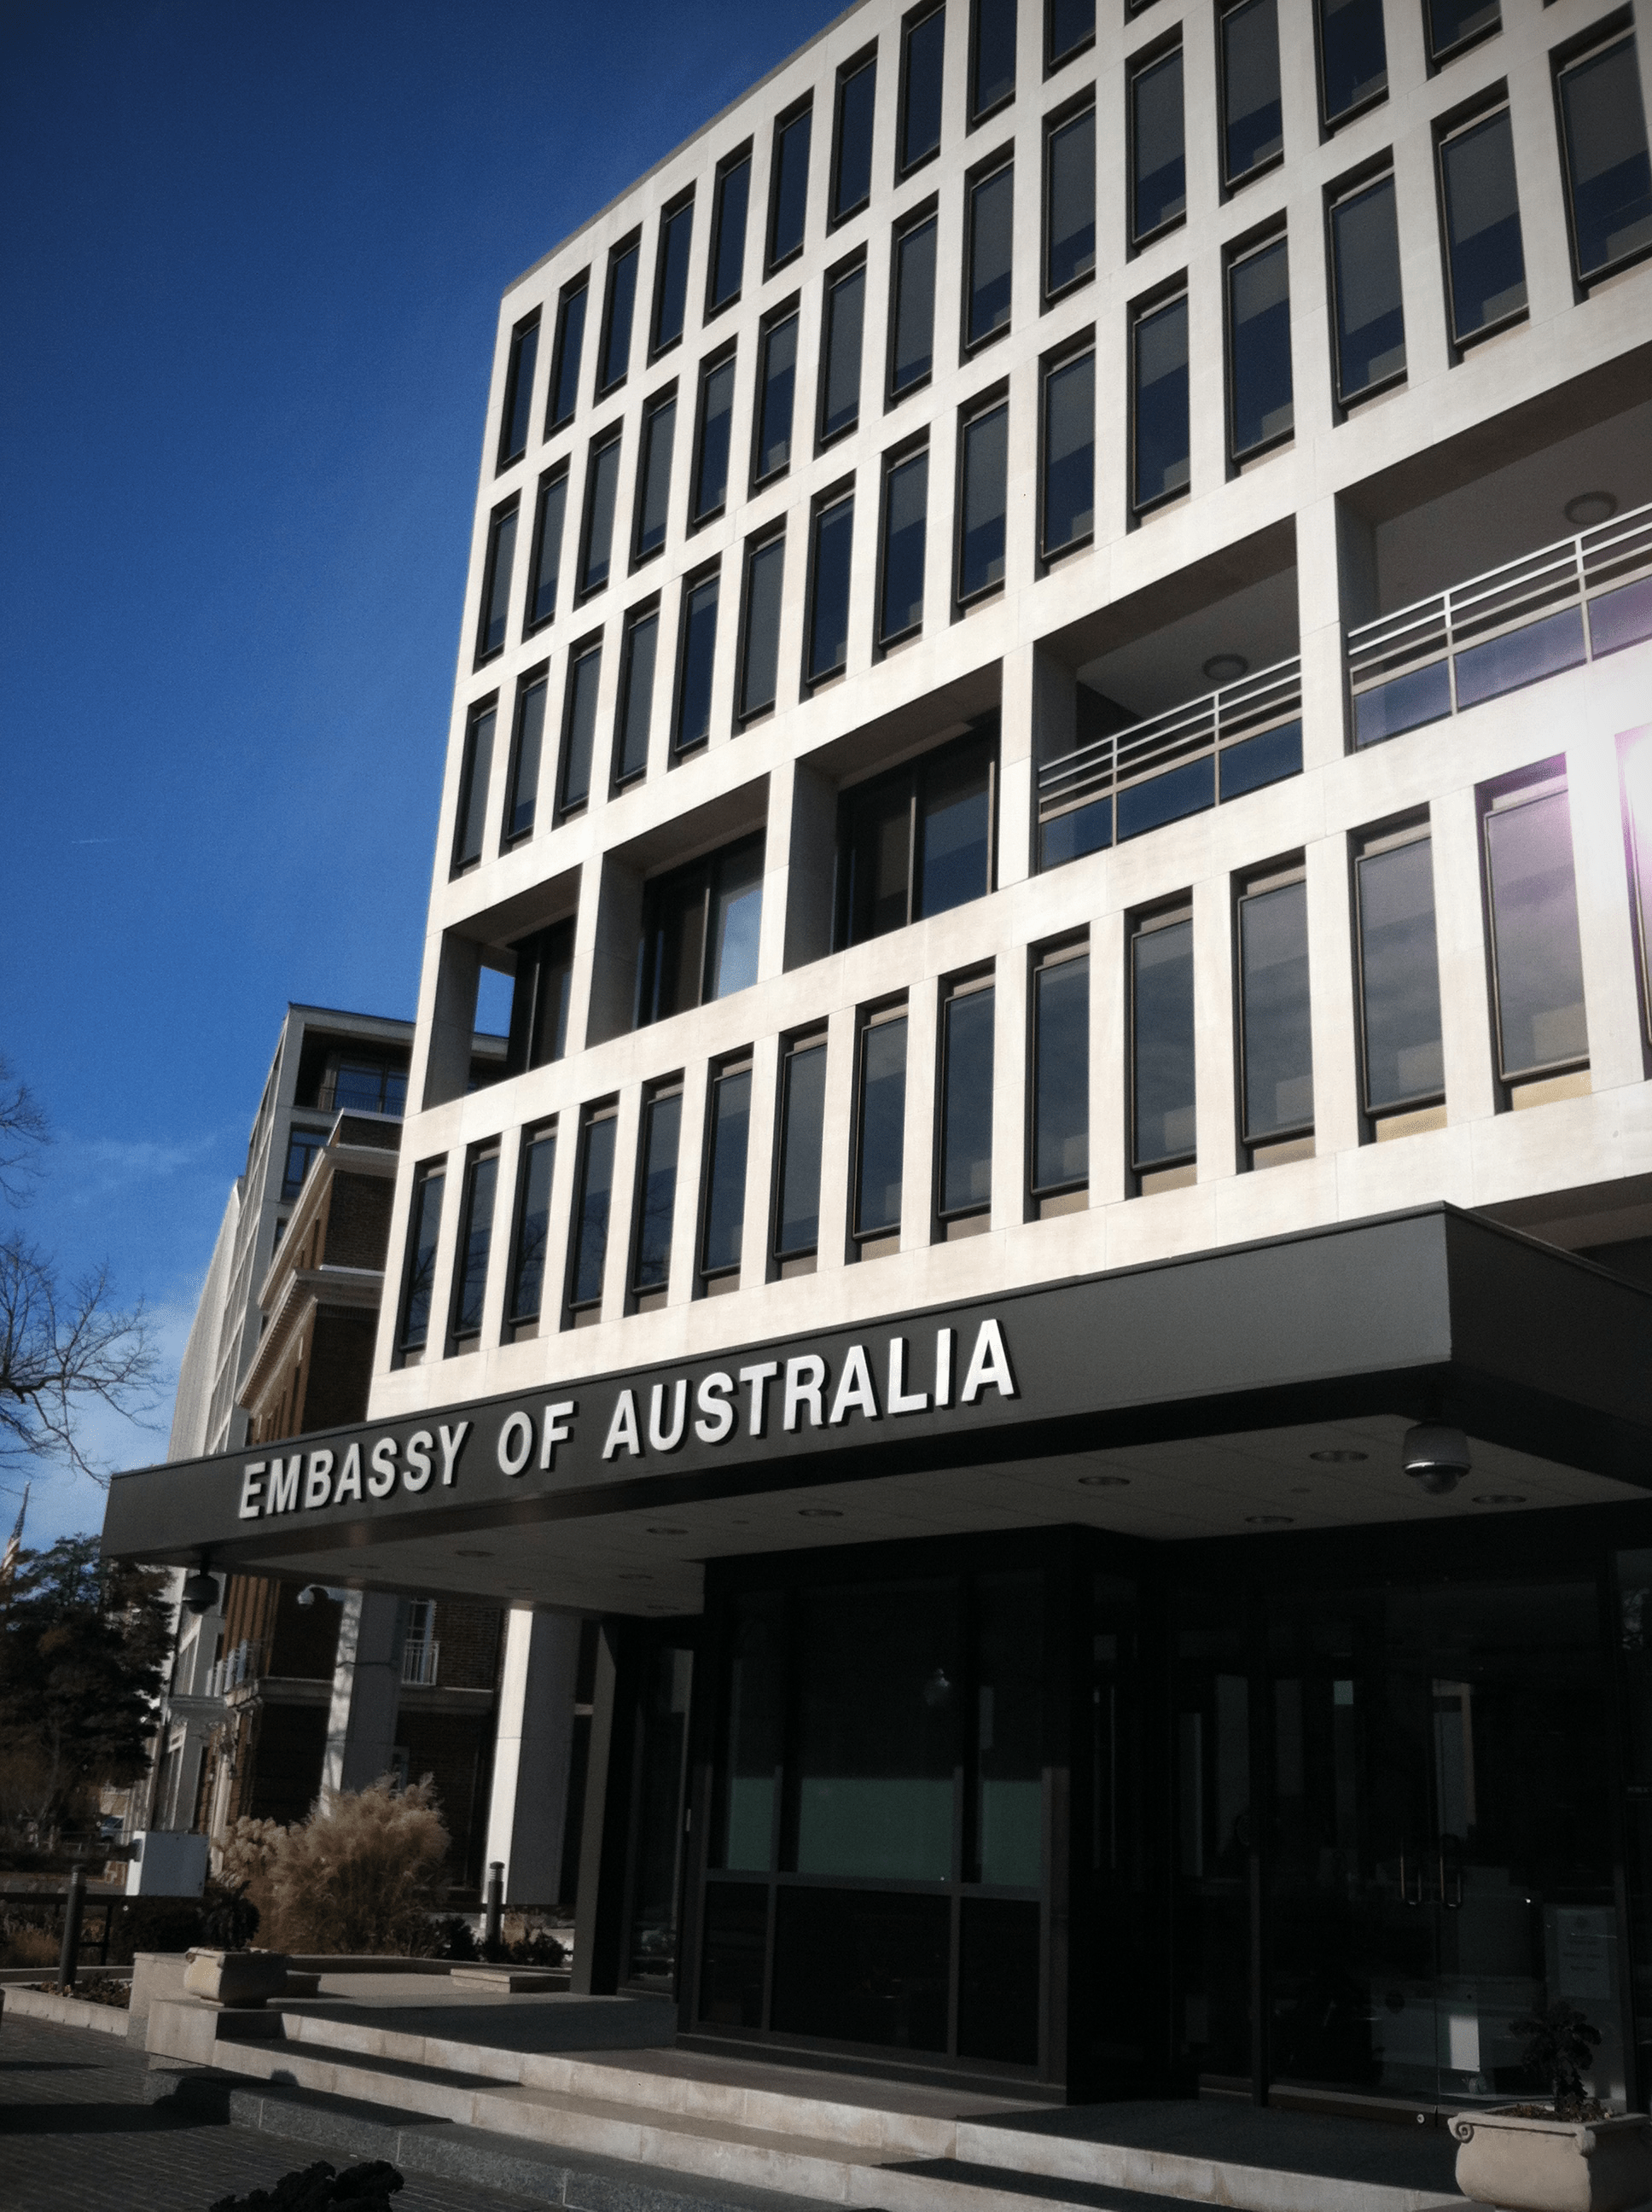 Australian Embassy Internship At The Embassy Of Australia Go Study In Australia